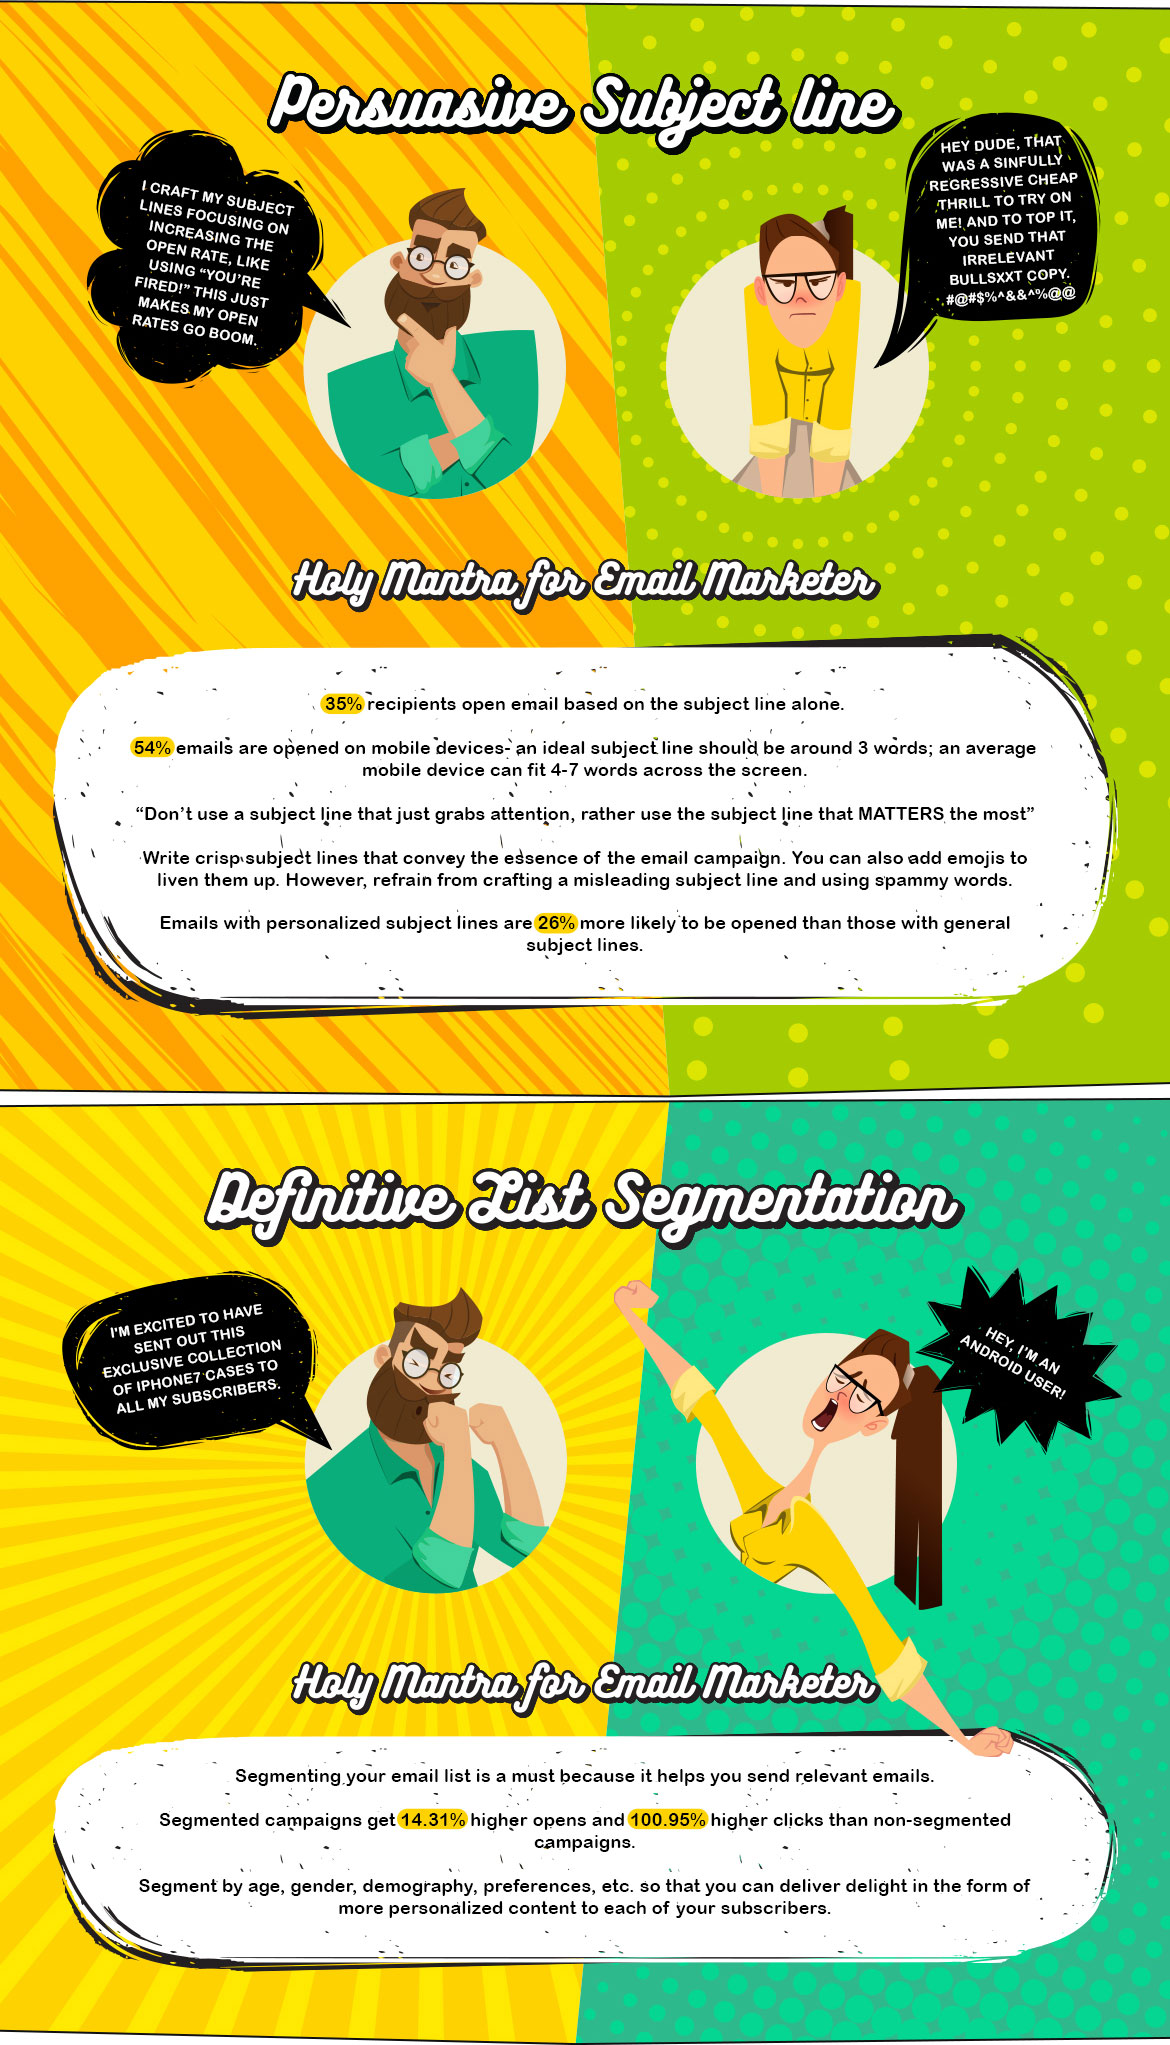 EmailMonks infographic 3